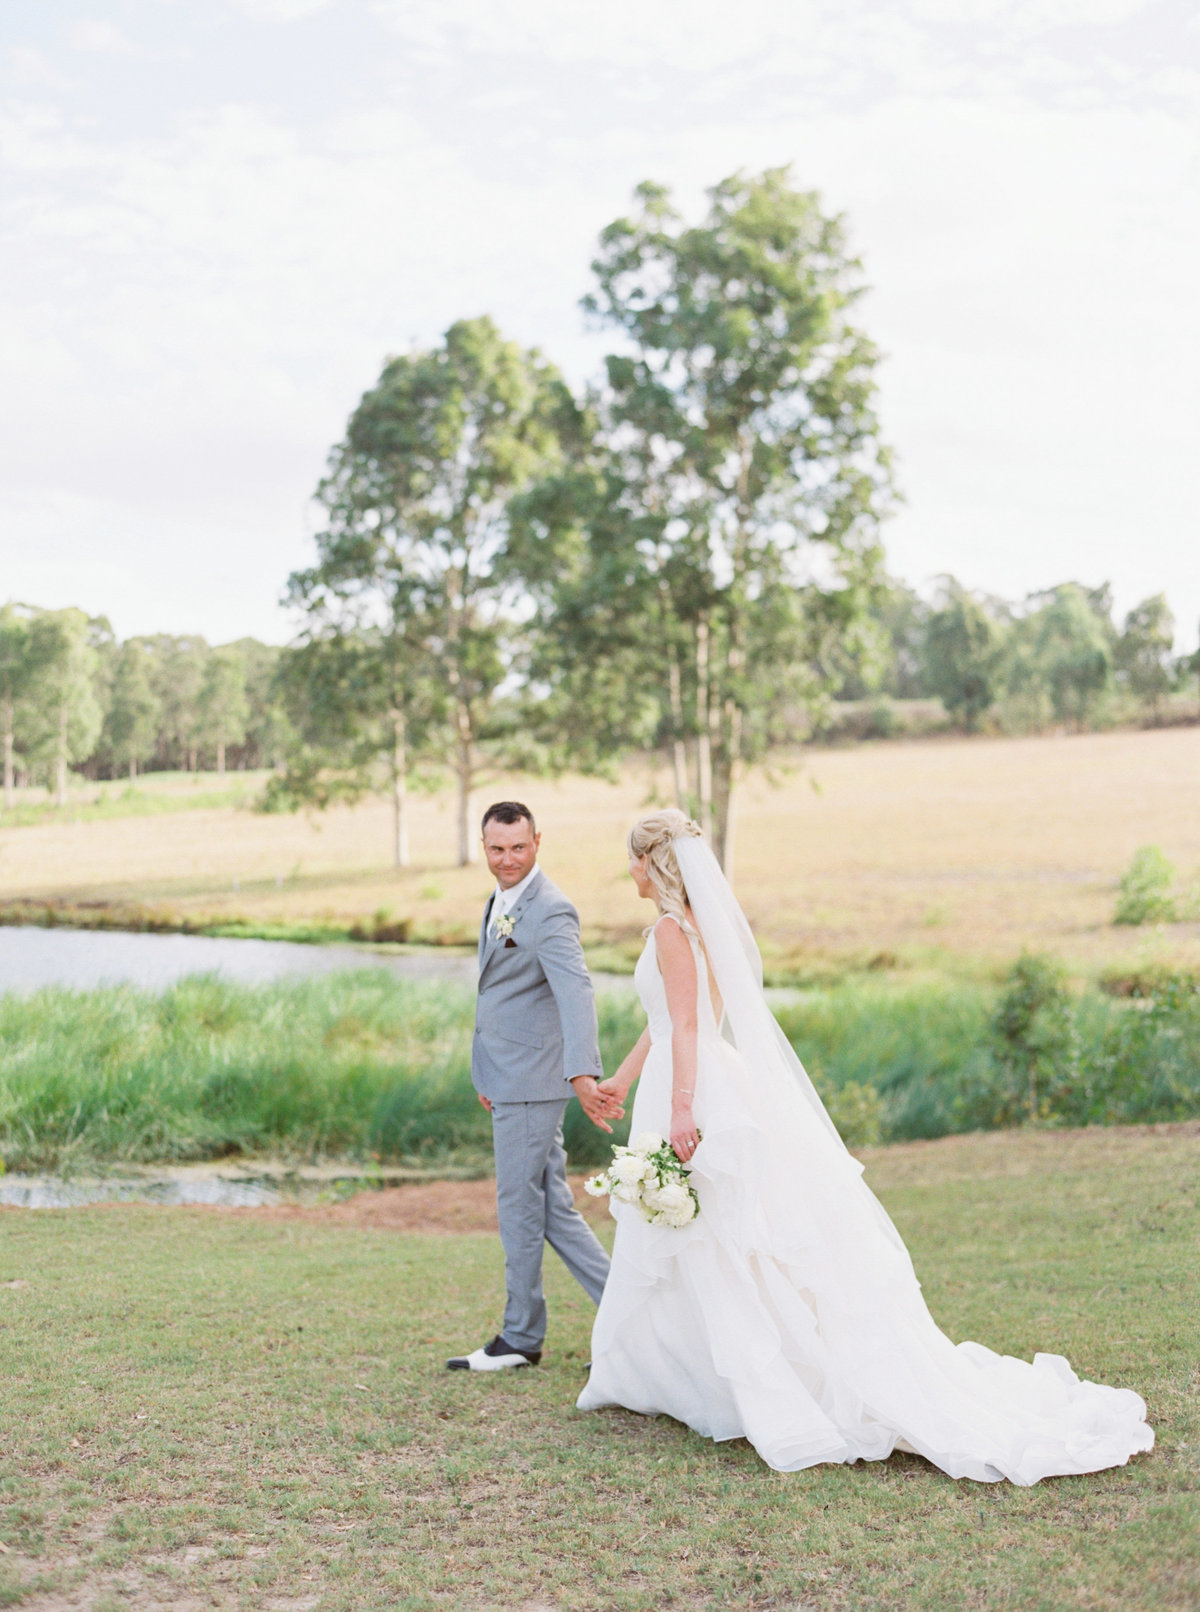 Hunter Valley Wedding Chateau Elan Destination Photographer Sheri McMahon Fine Art Film Australia-65